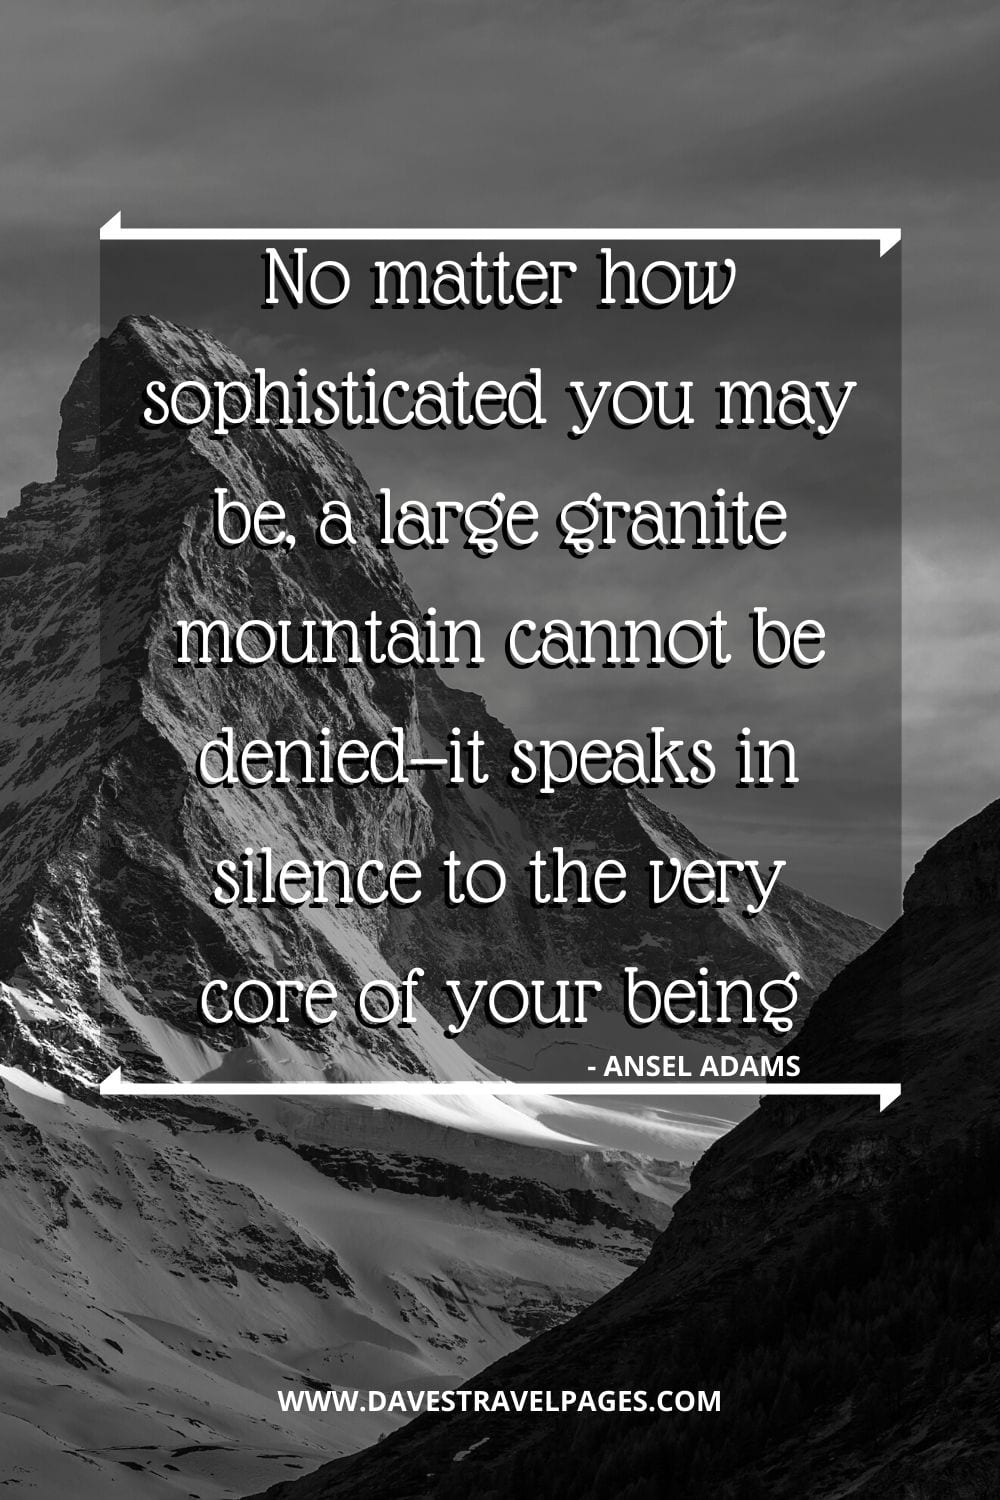 Quotes about mountains - No matter how sophisticated you may be, a large granite mountain cannot be denied—it speaks in silence to the very core of your being - Ansel Adams